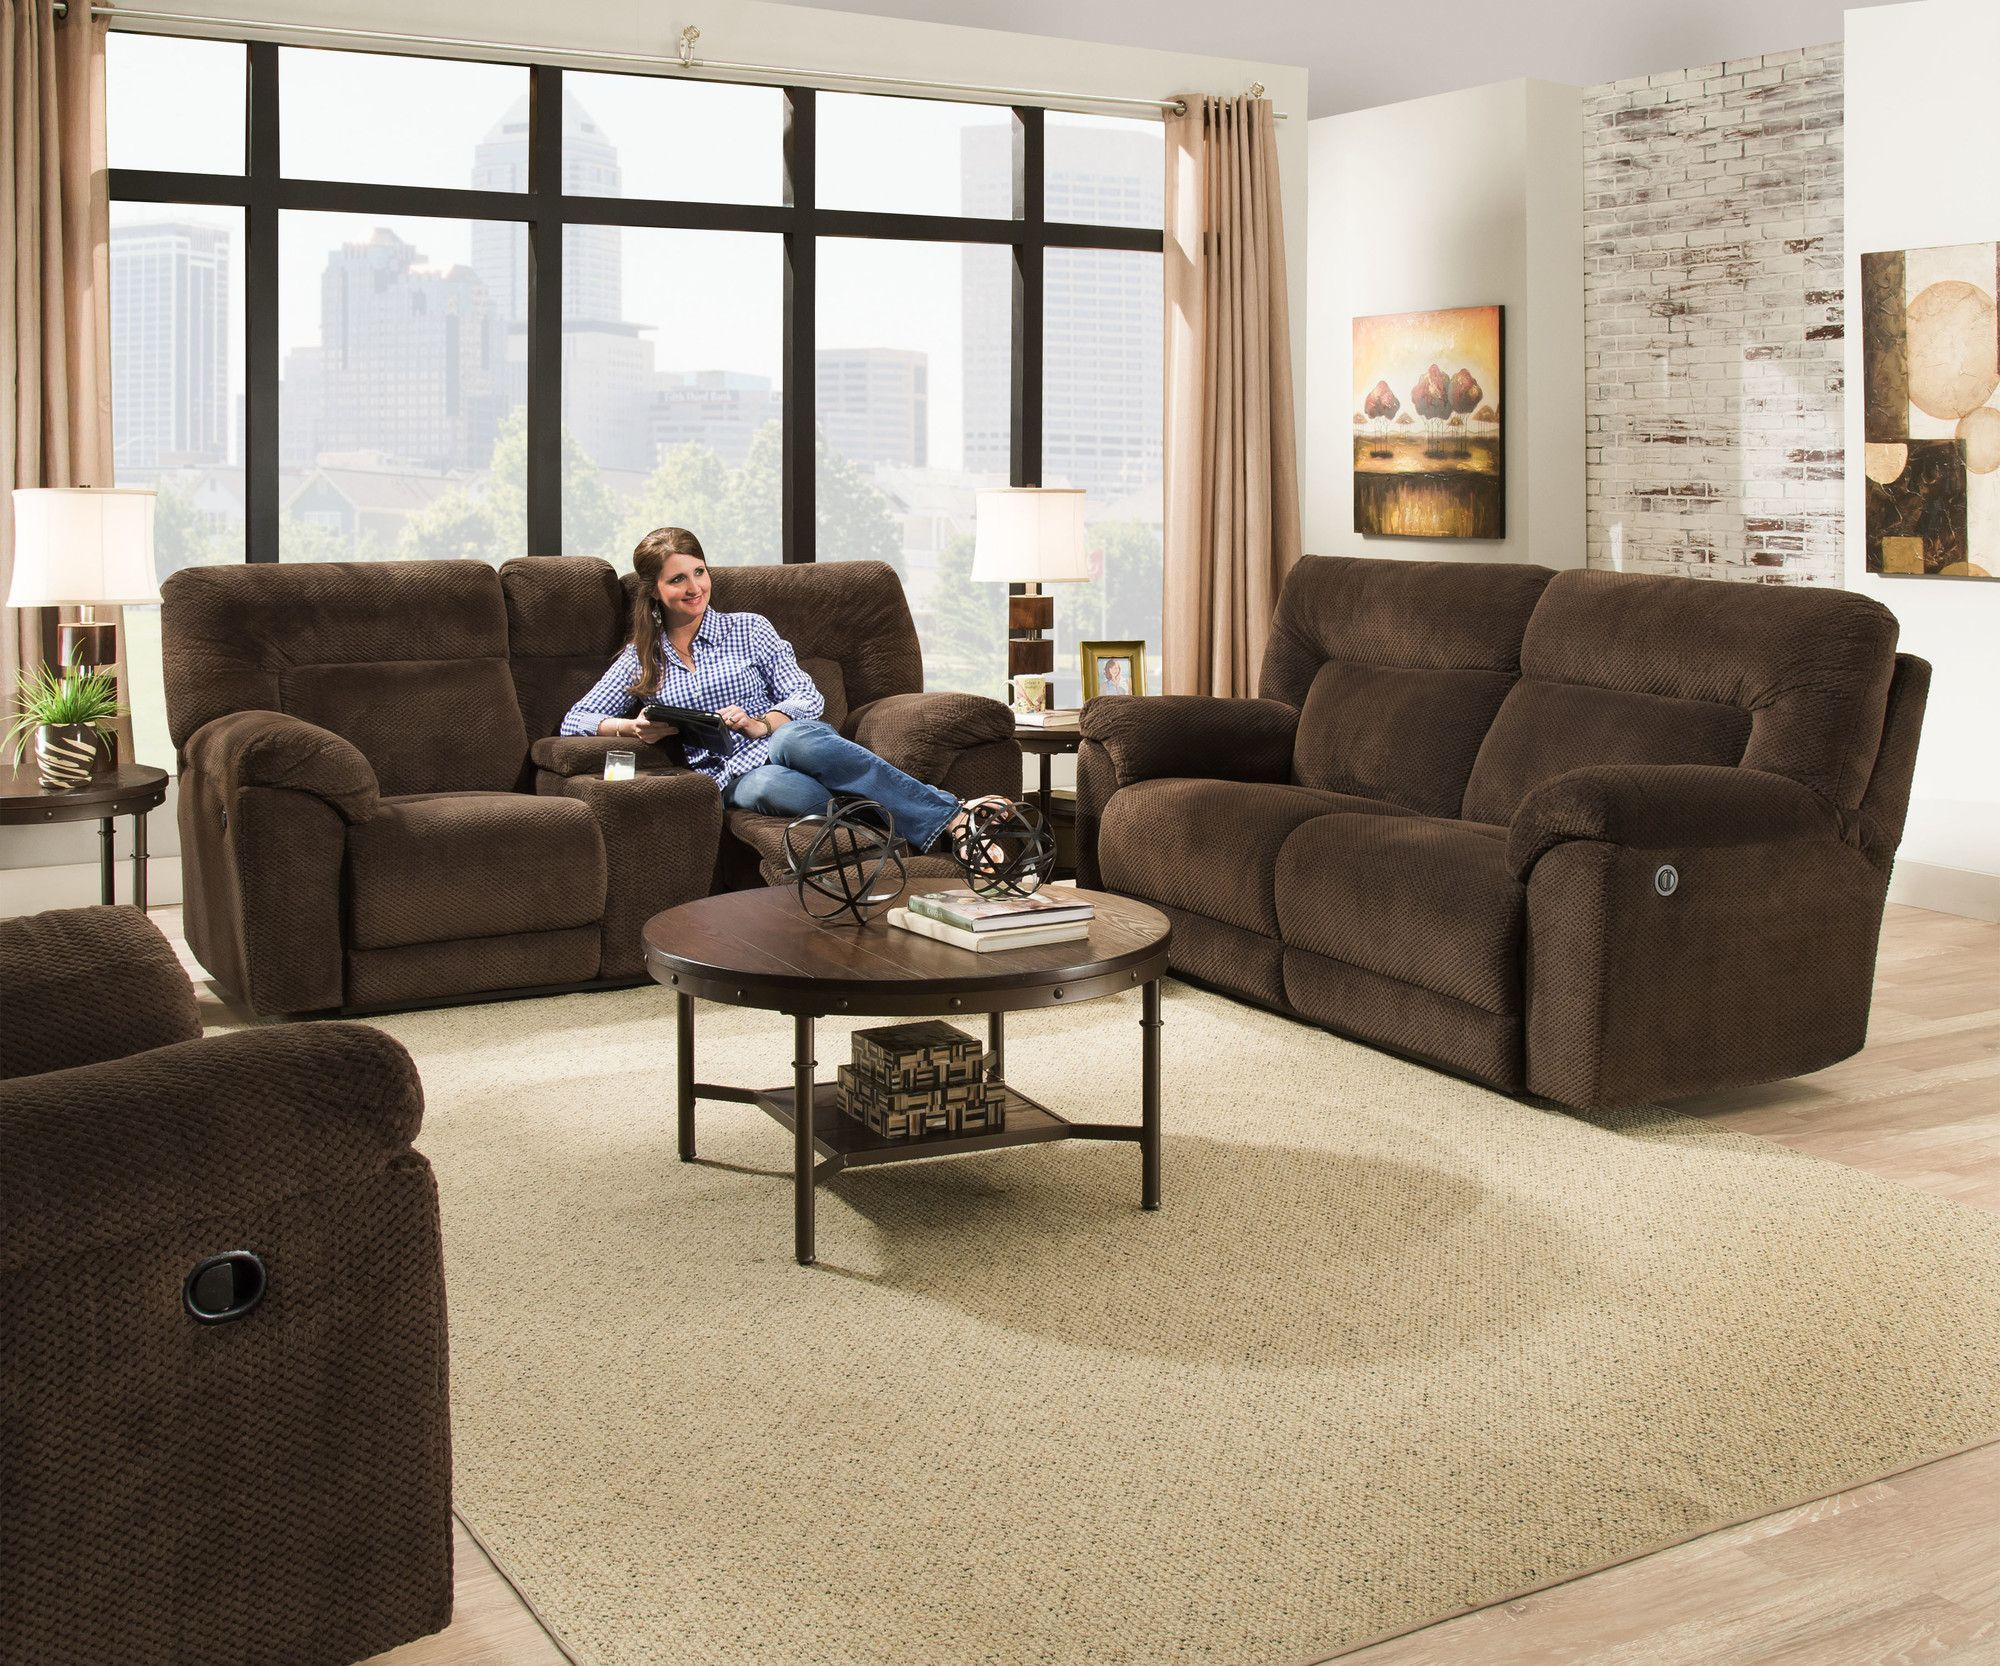 Best Madeline Swivel Glider Recliner Cheap Living Room Sets 640 x 480